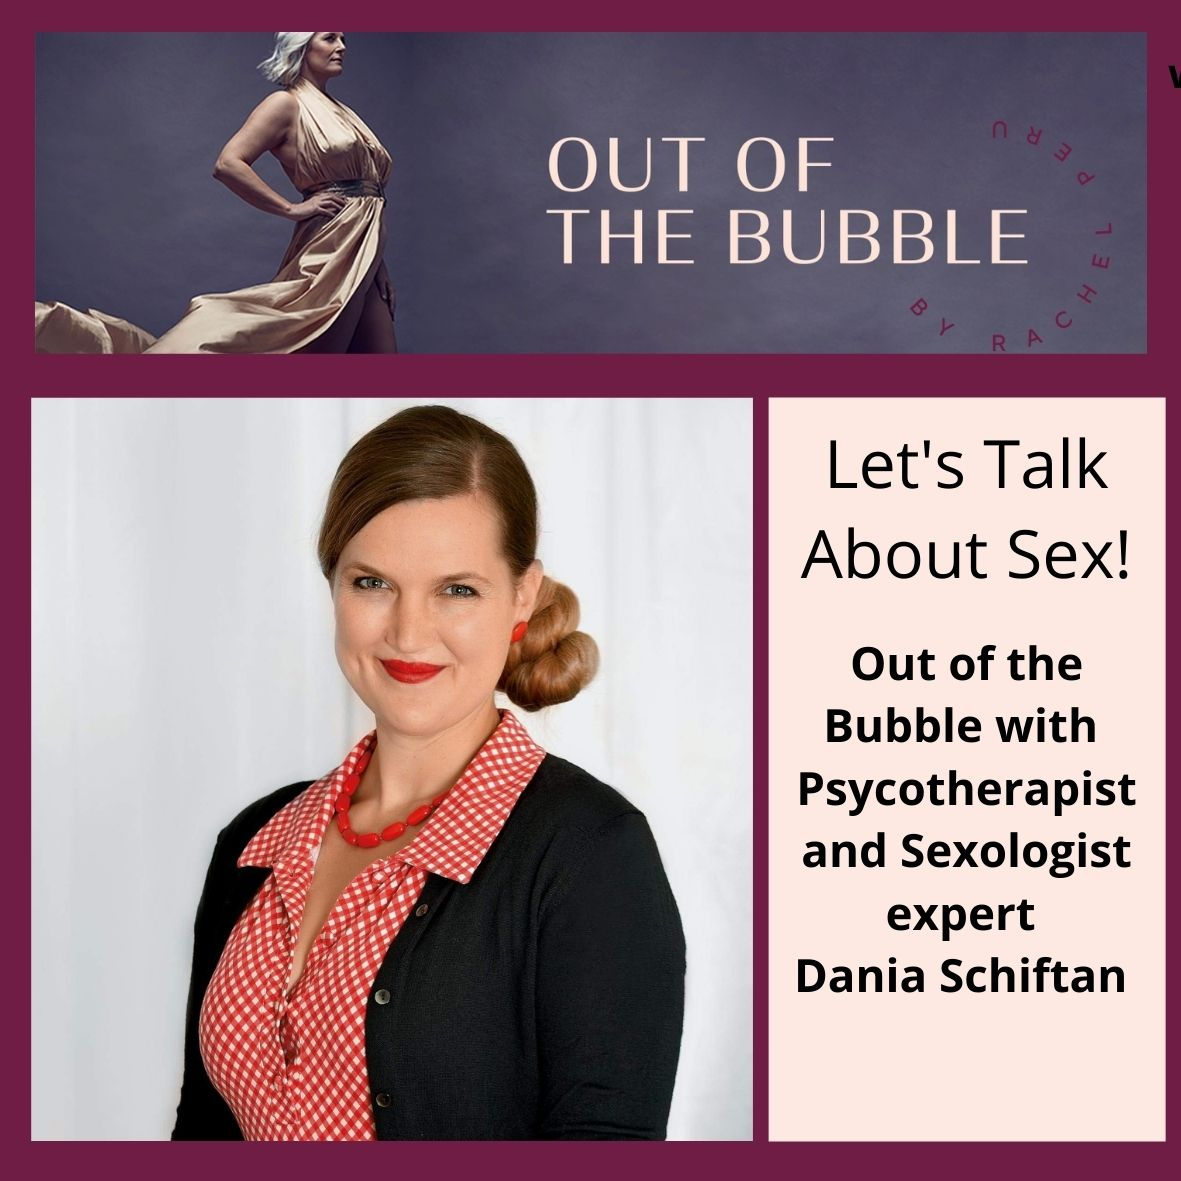 Ep.83  Out of the Bubble with Psychotherapist and Sexologist Expert Dania Schiftan.